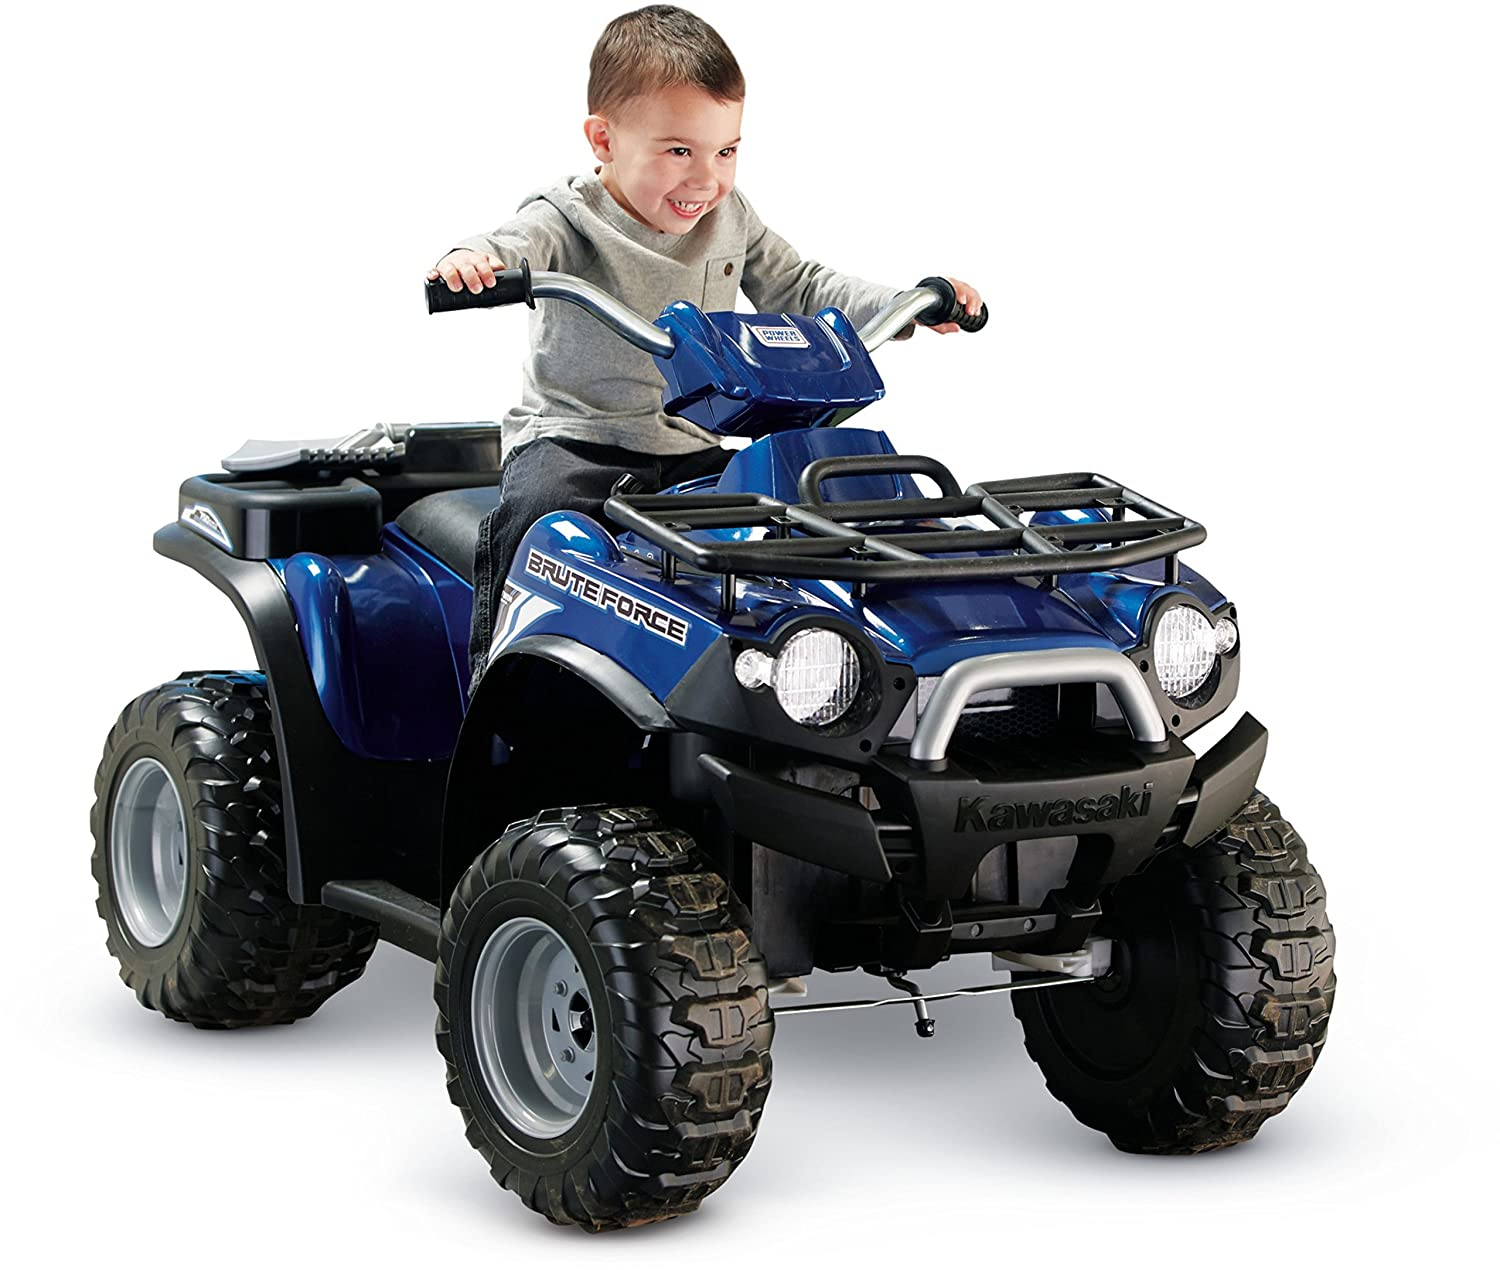 Power Wheels Kawasaki Brute Force - The Best power wheels for boys